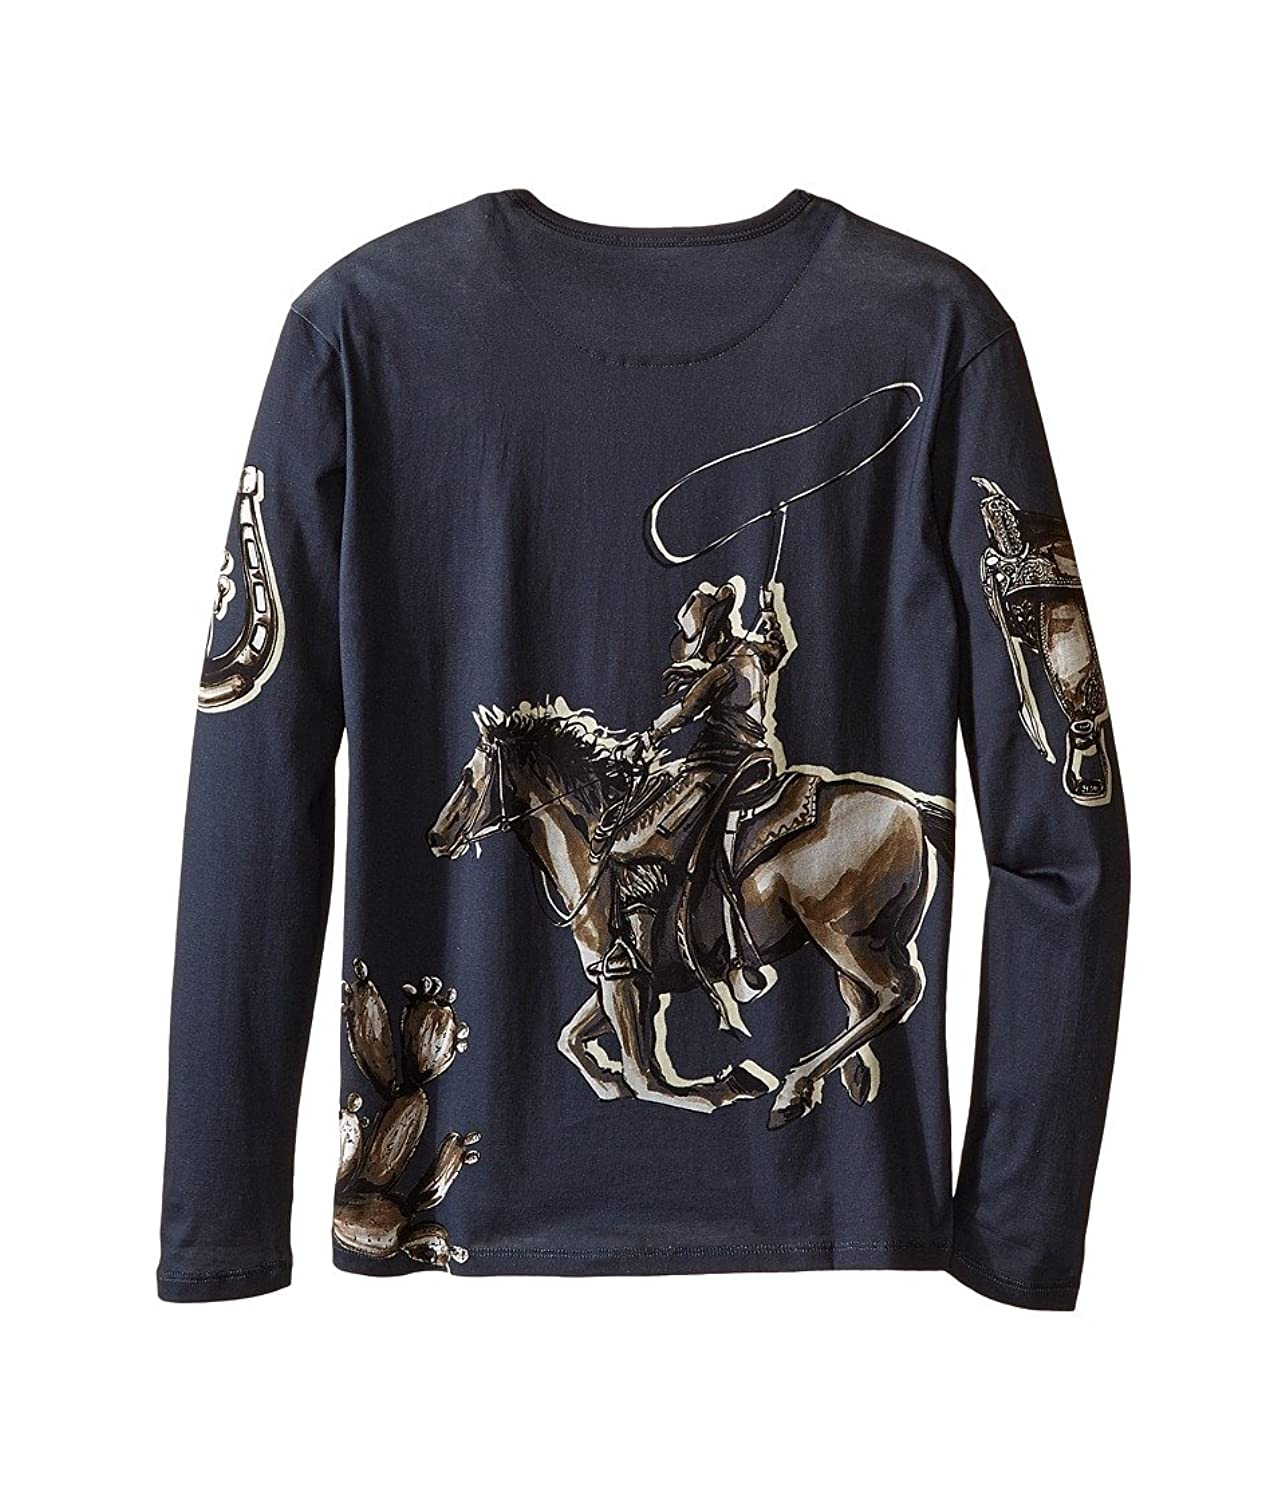 Amazon.com: Dolce & Gabbana Kids Boys City Rodeo Cavallo T-Shirt (Big Kids) Navy Print T-Shirt: Clothing